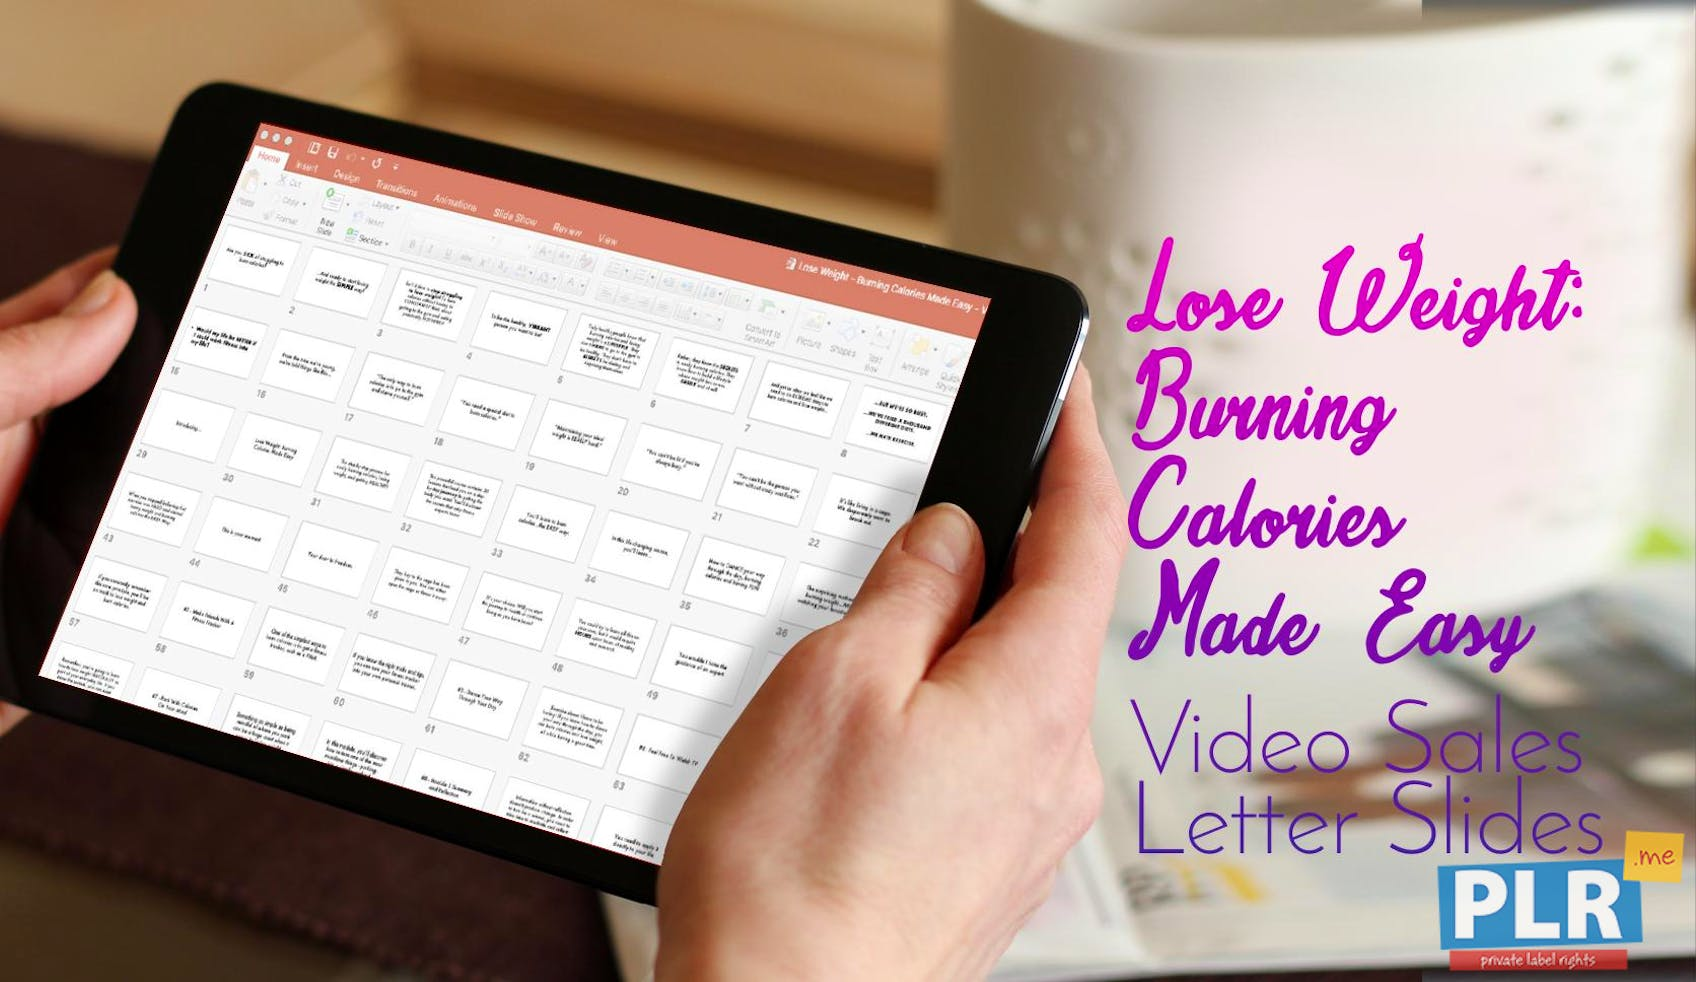 Lose Weight: Burning Calories Made Easy - Video Sales Letter Slides